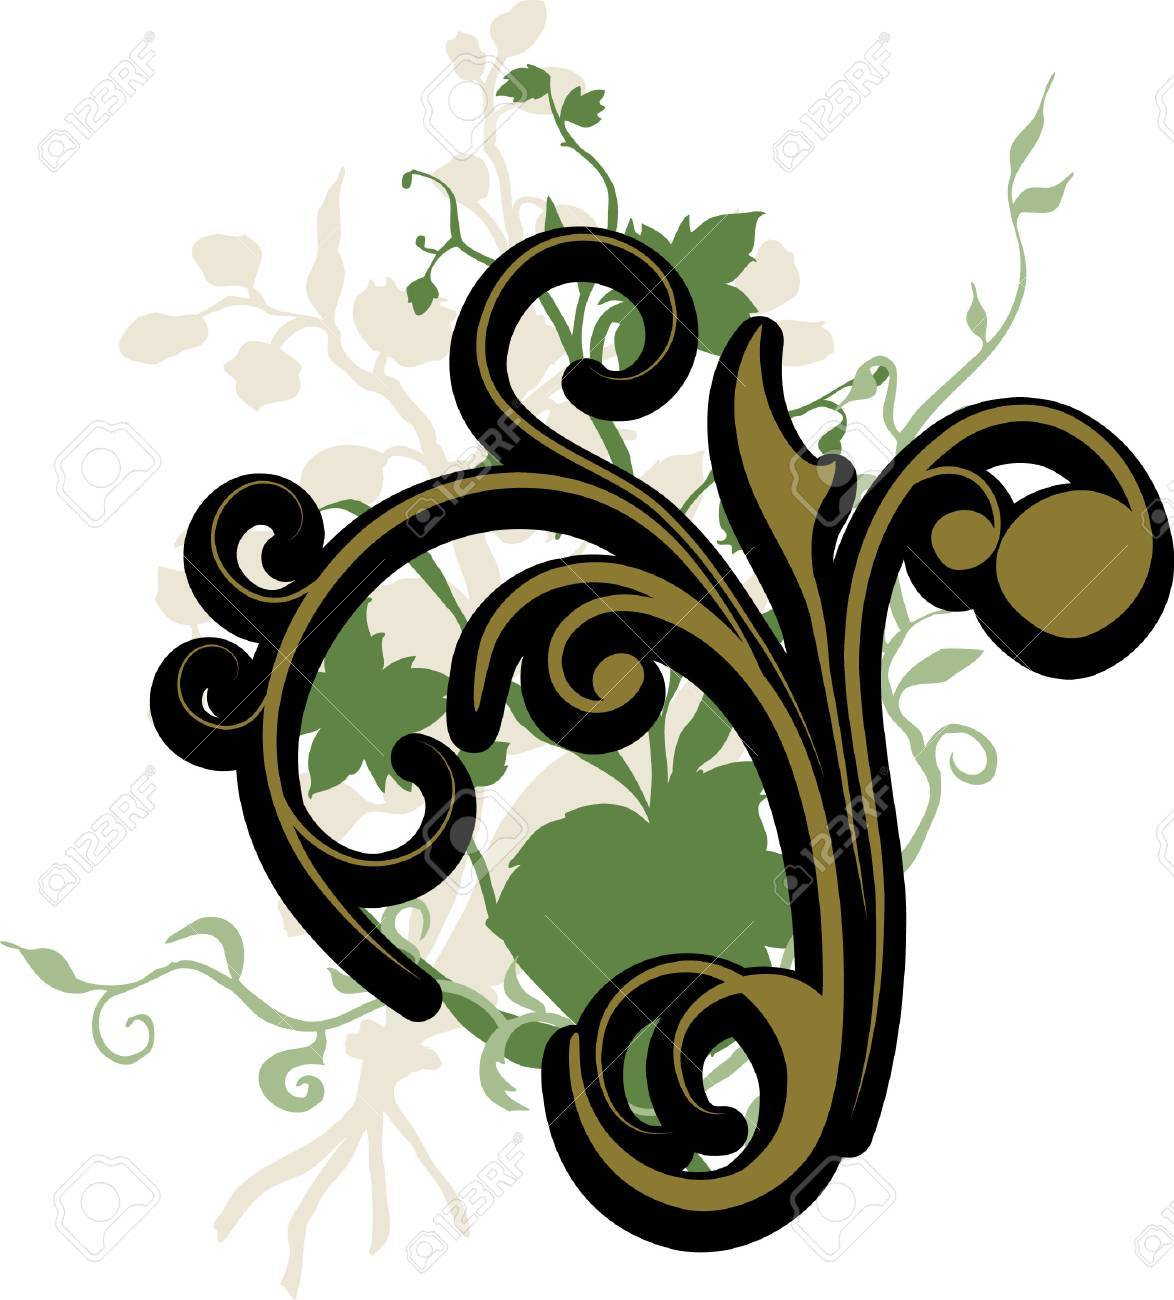 Floral Decoration Stock Vector - 4515619